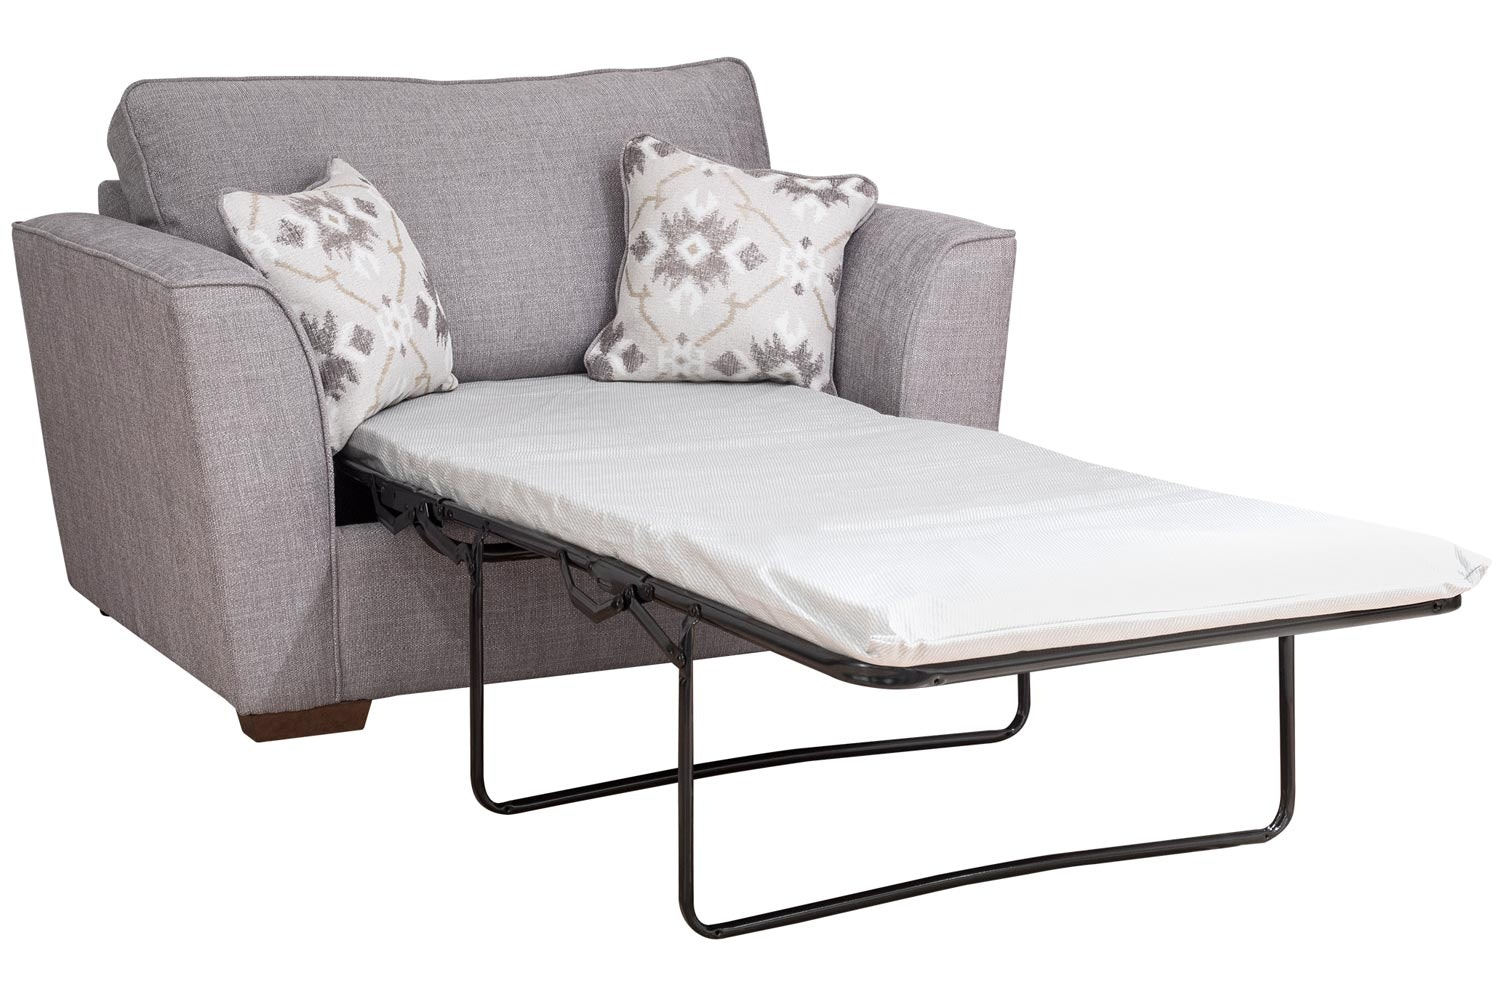 Fantasia Armchair Sofabed